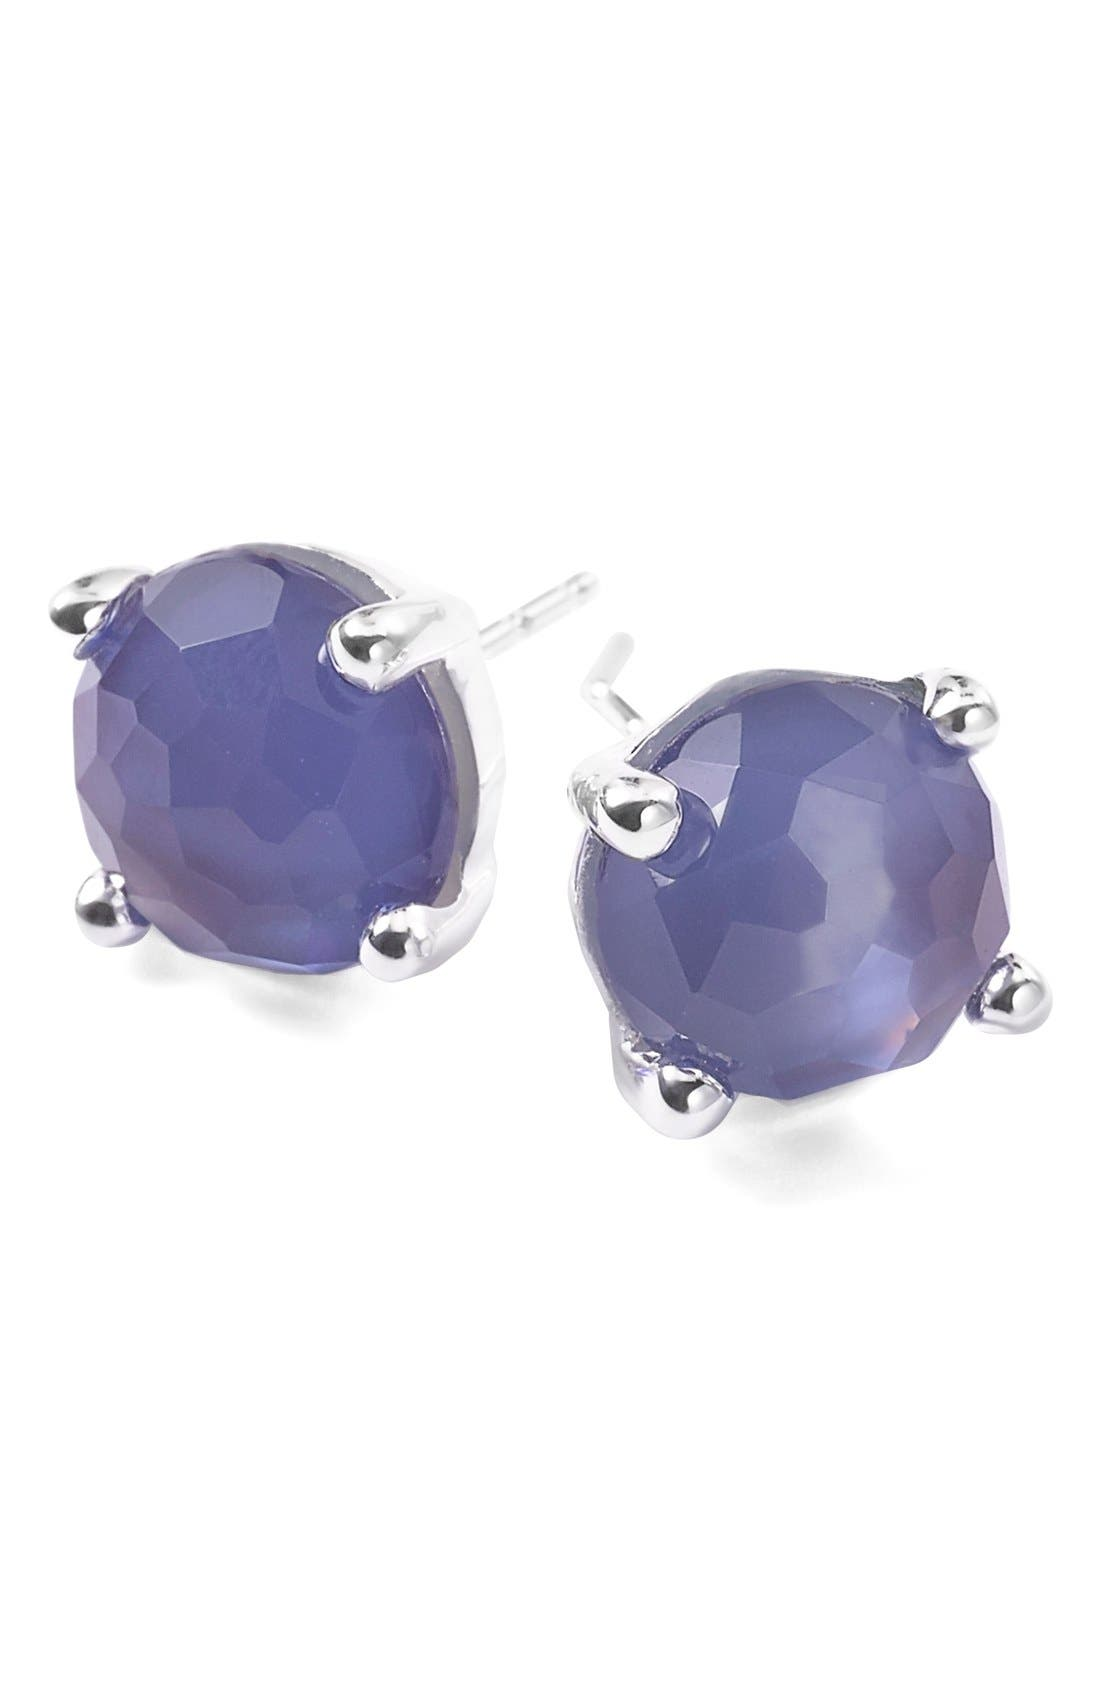 'Rock Candy' Mini Stud Earrings,                         Main,                         color, Silver/ Viola